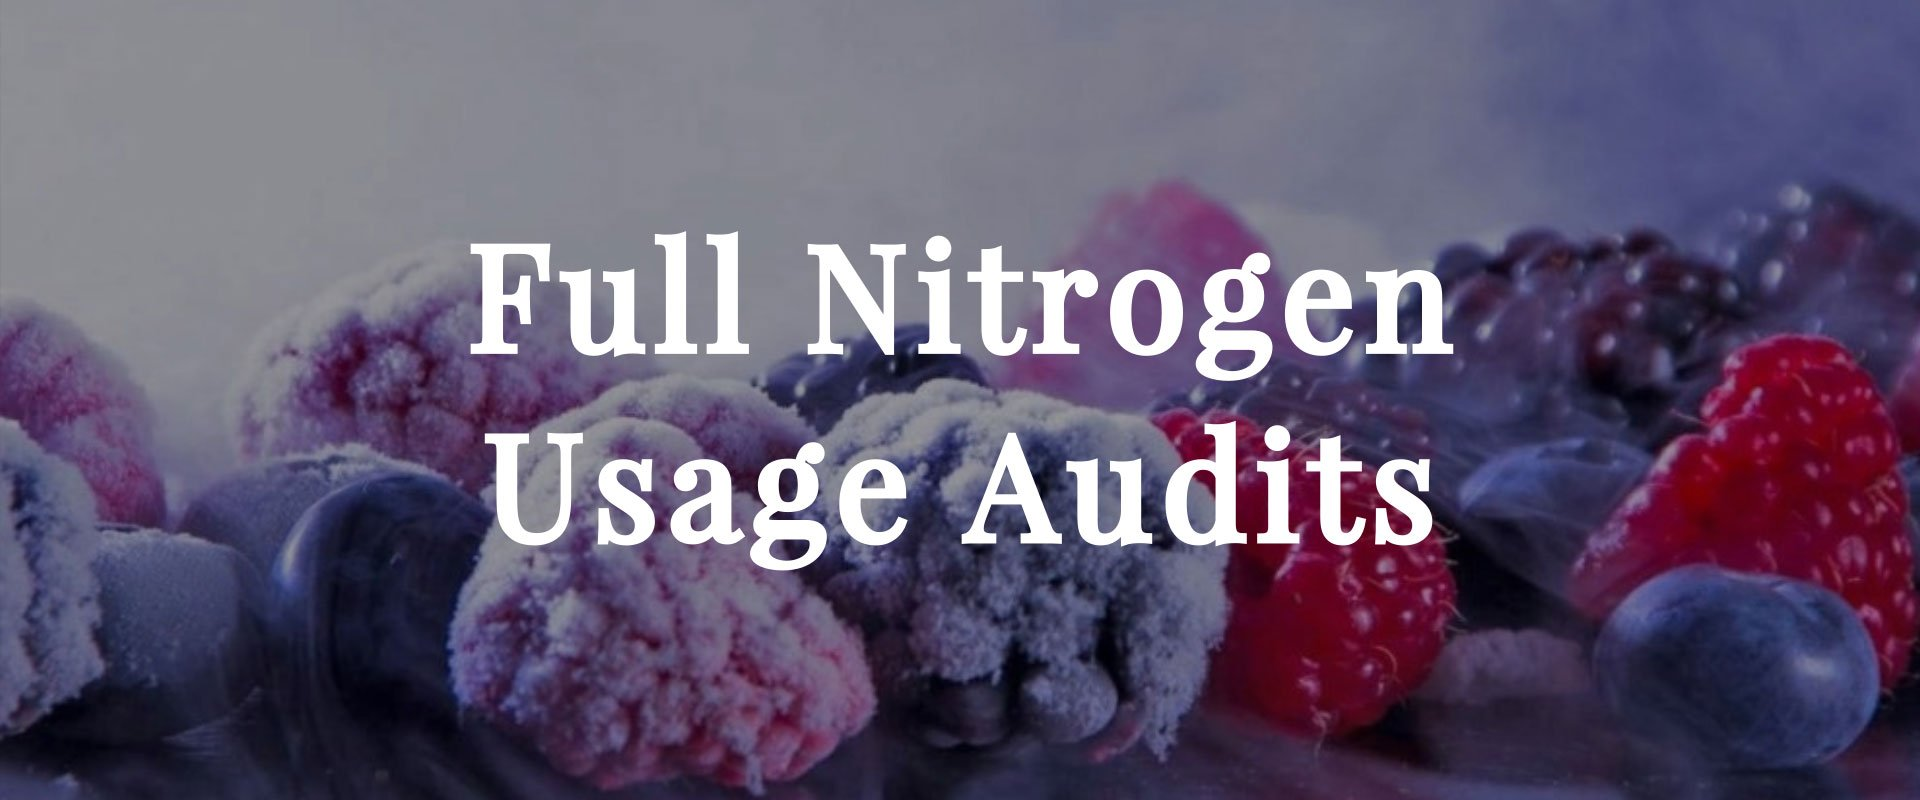 full nitrogen usage audits